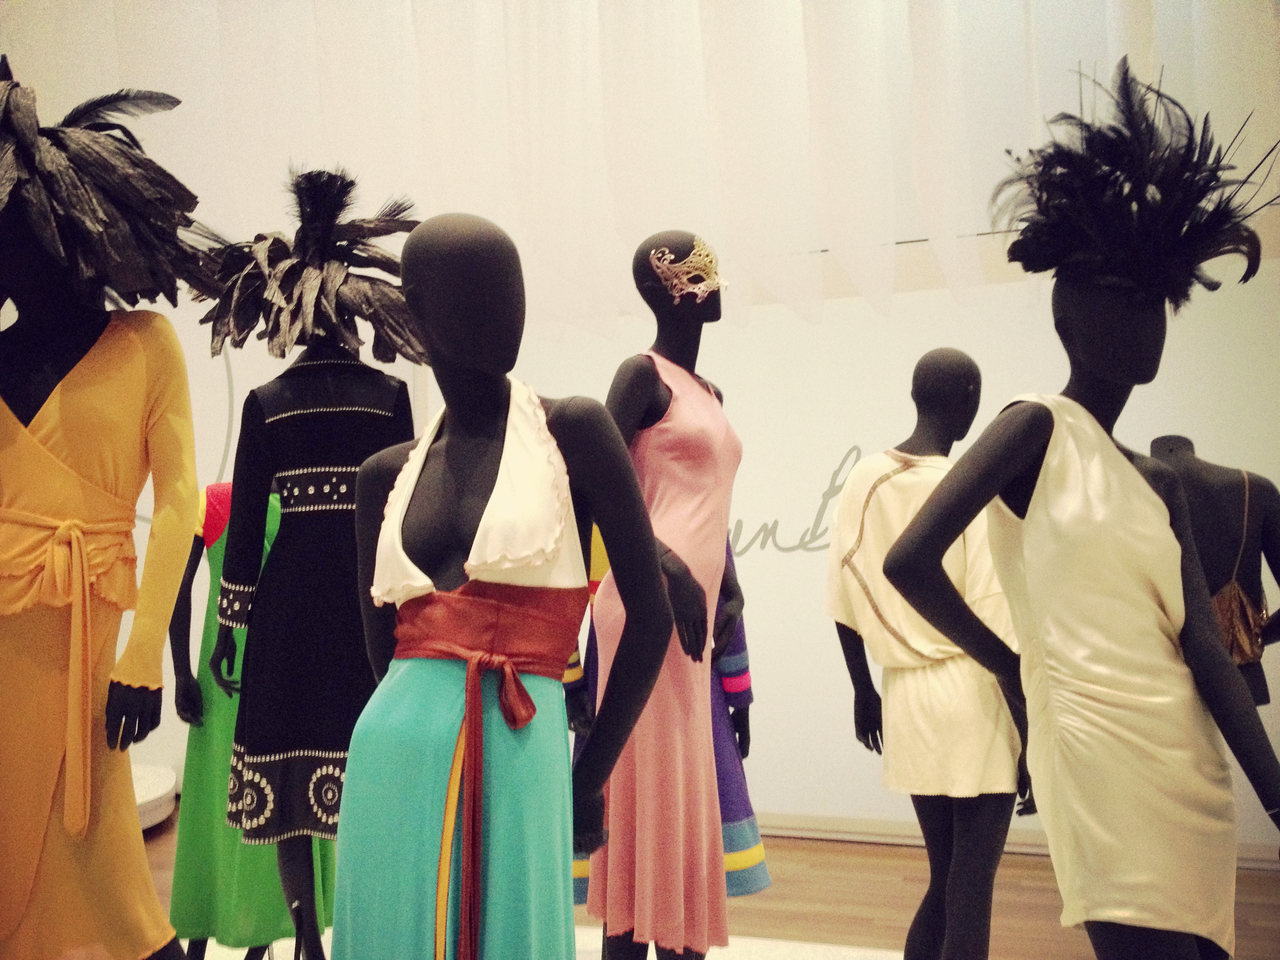 Exhibit of Stephen Burrows  #kitcam #pepper #peppersearching #fashion #art #stephenburrows